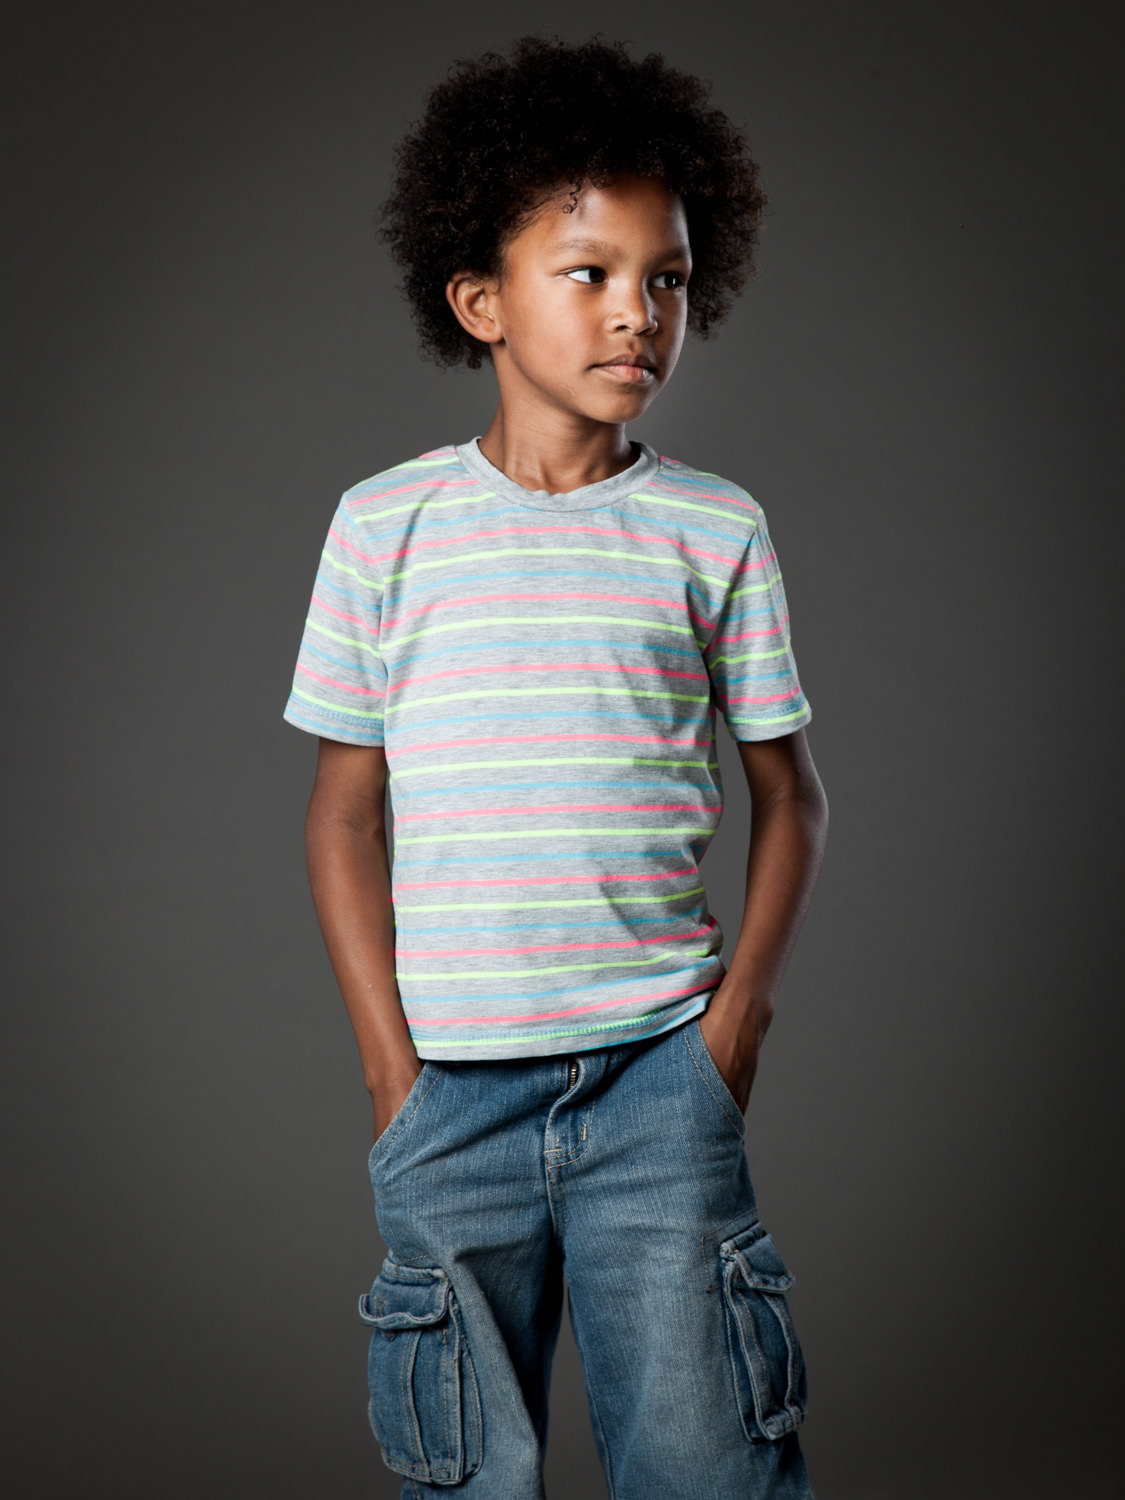 tim gerges capetown photographer kids fashion-9749.jpg